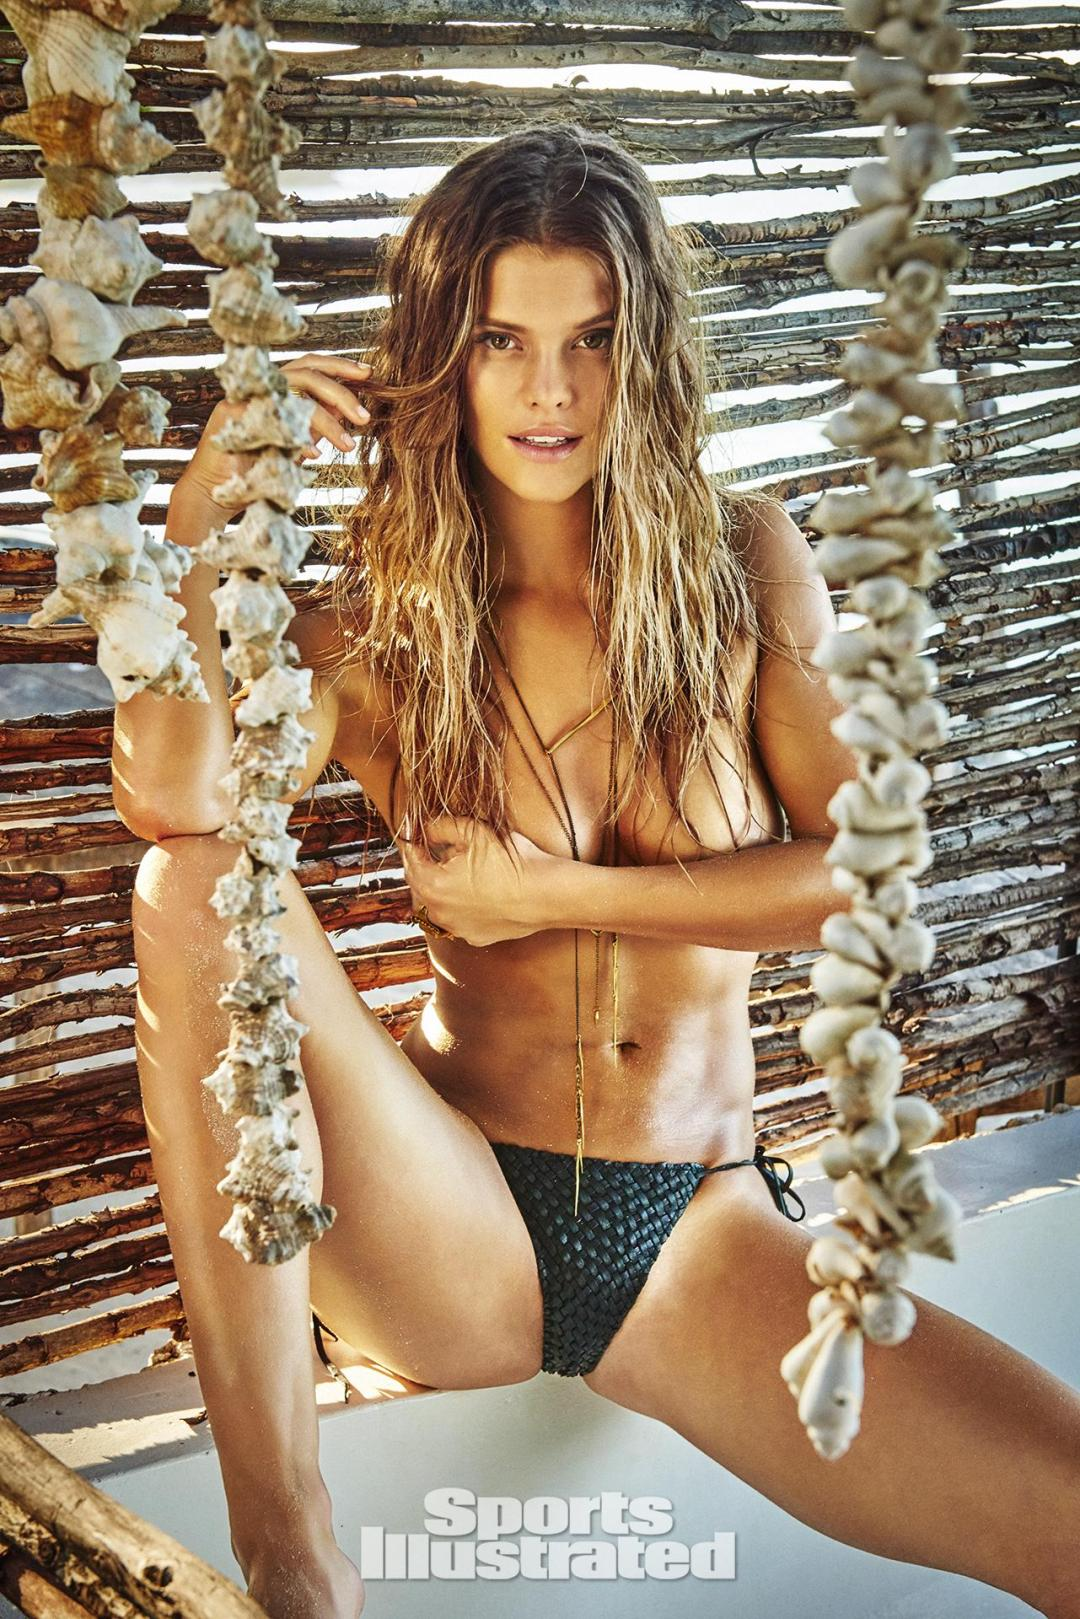 nina-agdal-2016-sexy-topless-photo-sports-illustrated 8